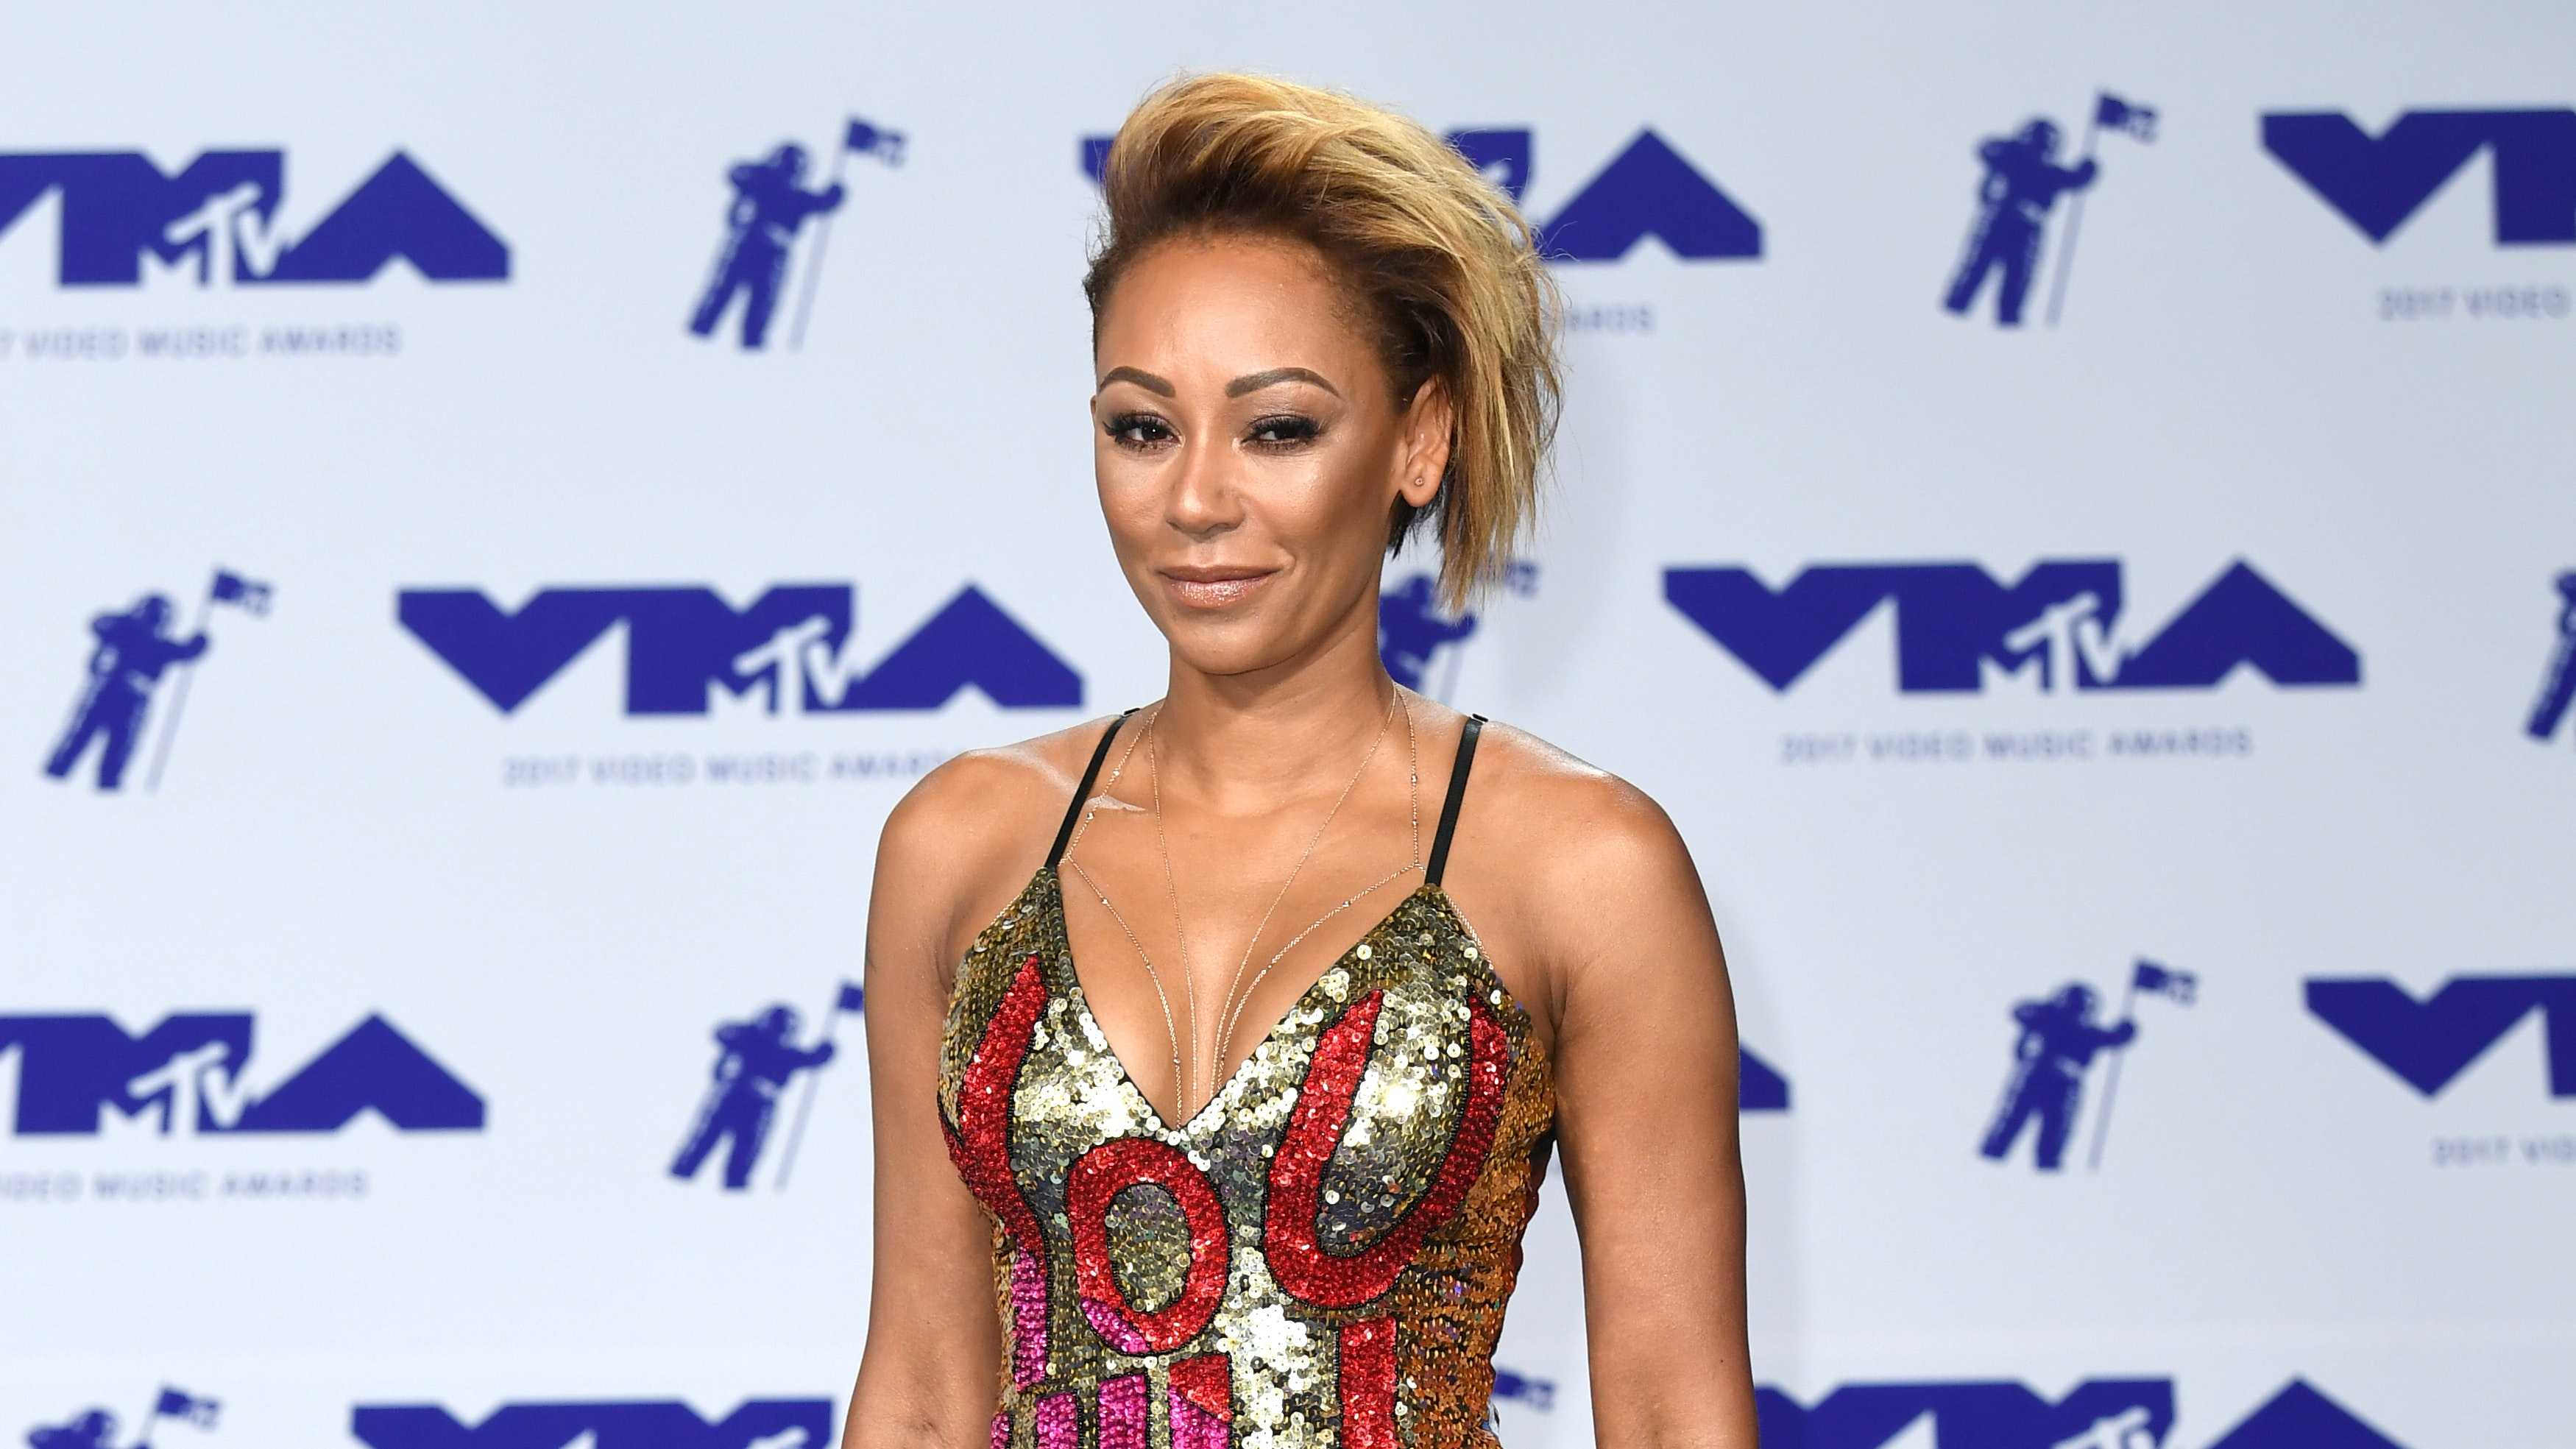 What happened to Mel B?